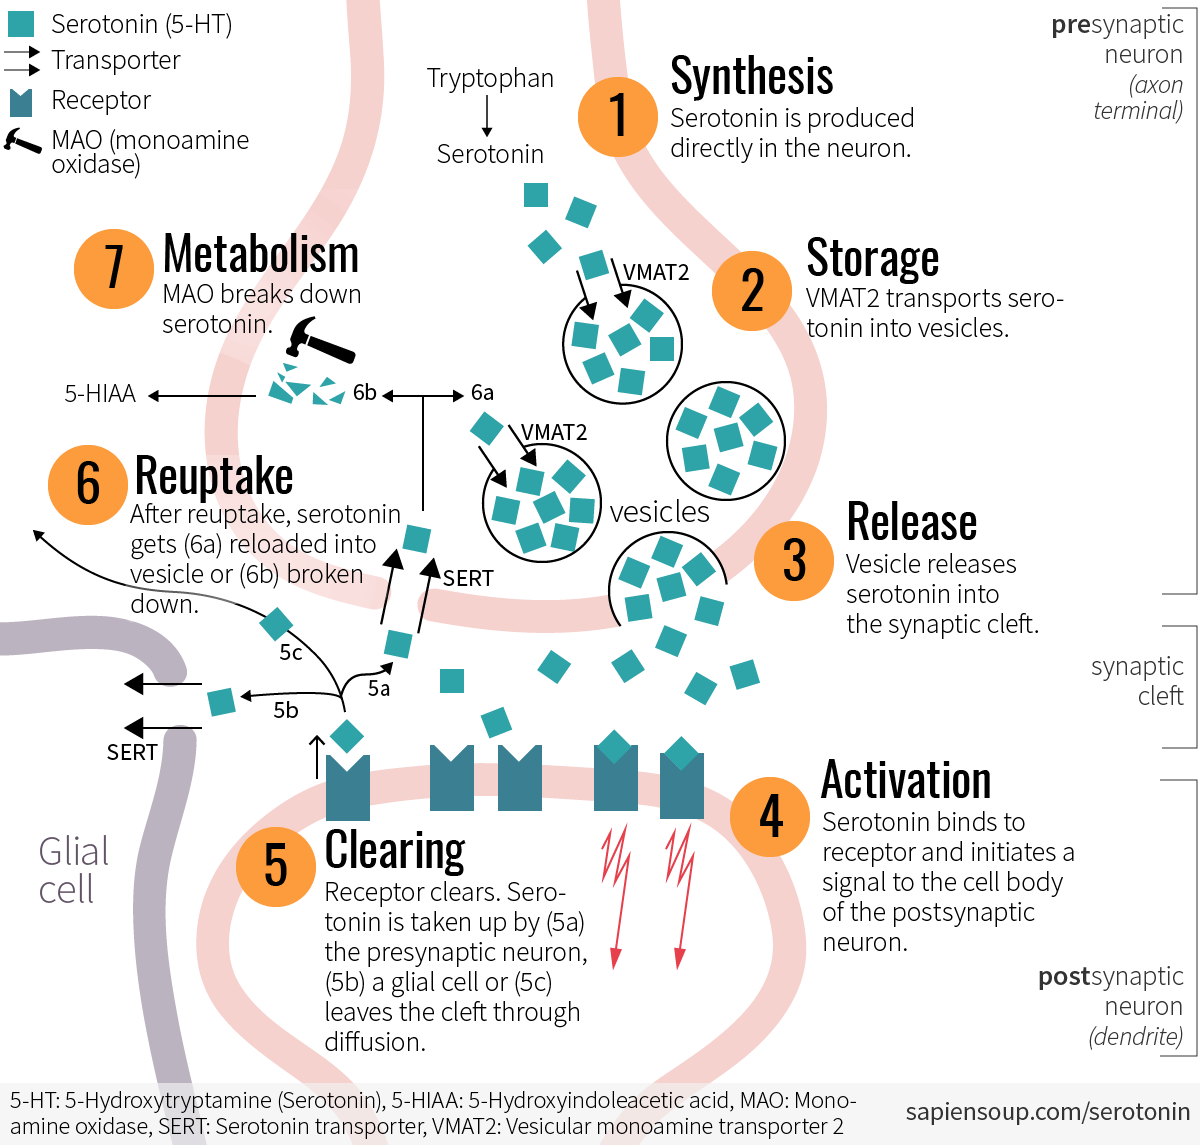 Lifecycle of serotonin at the synapse: synthesis, storage, release, receptor activation and clearing, reuptake and metabolism